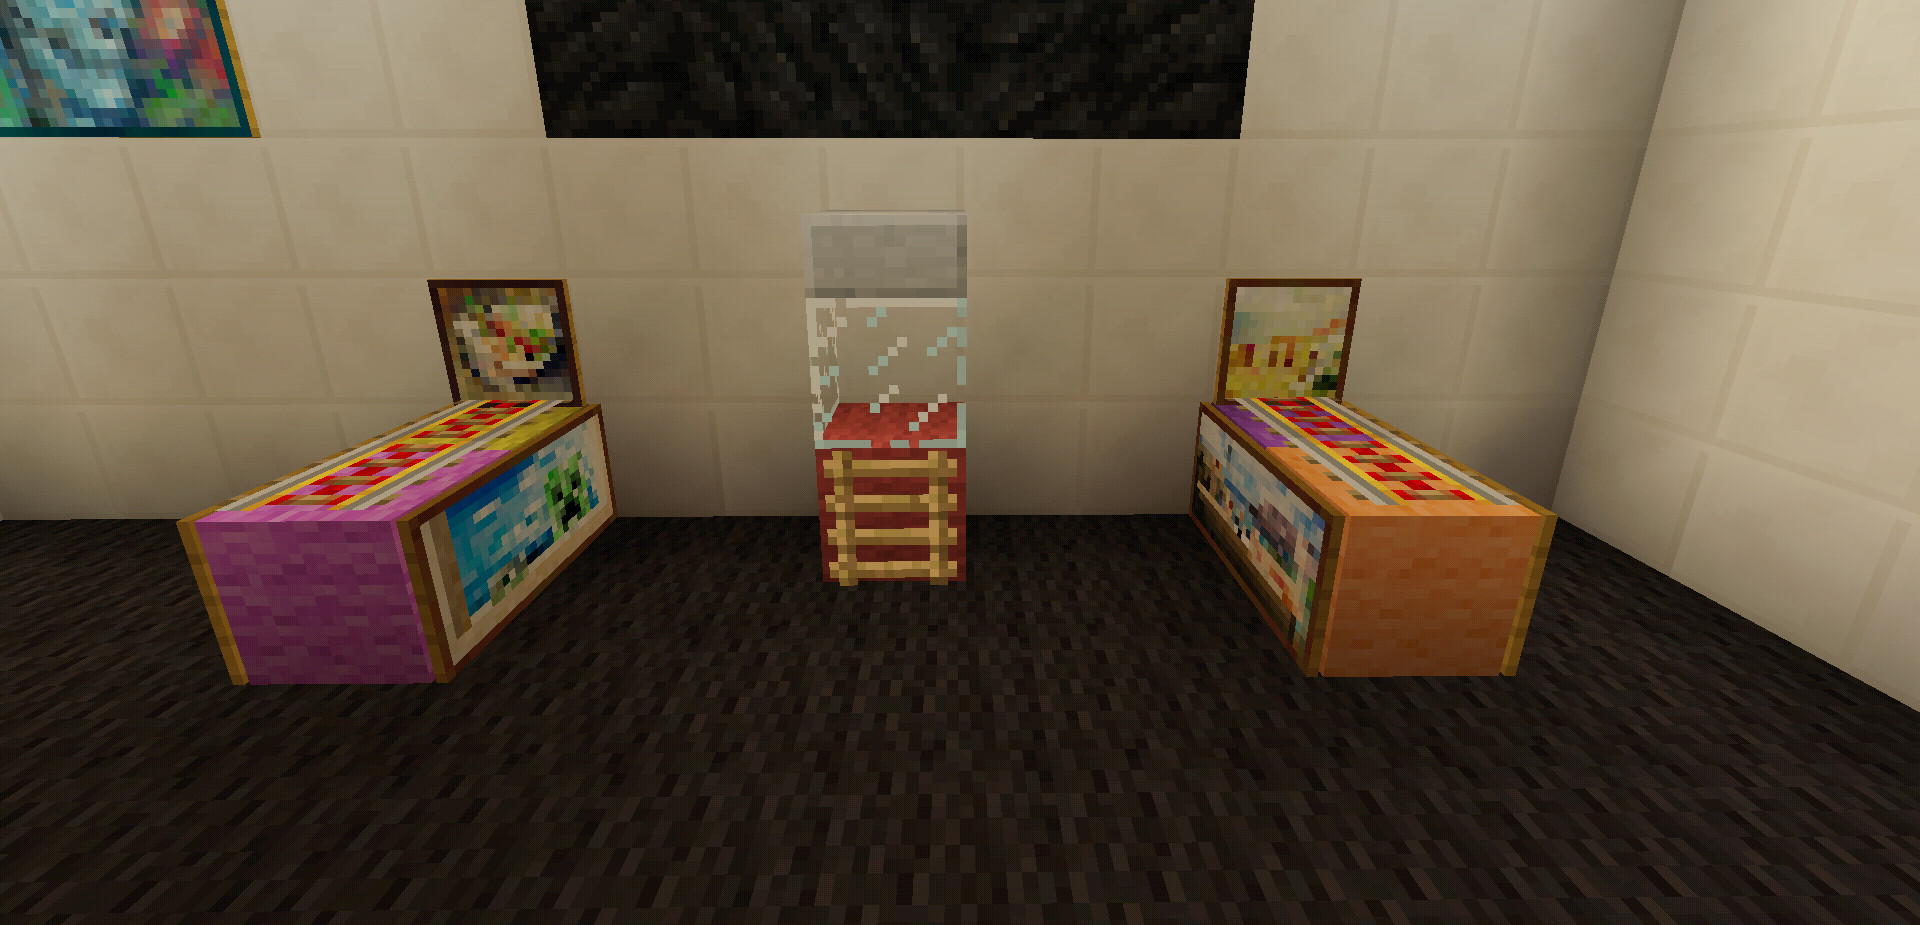 Best ideas about Minecraft Game Room . Save or Pin Minecraft Arcade Game Room Now.